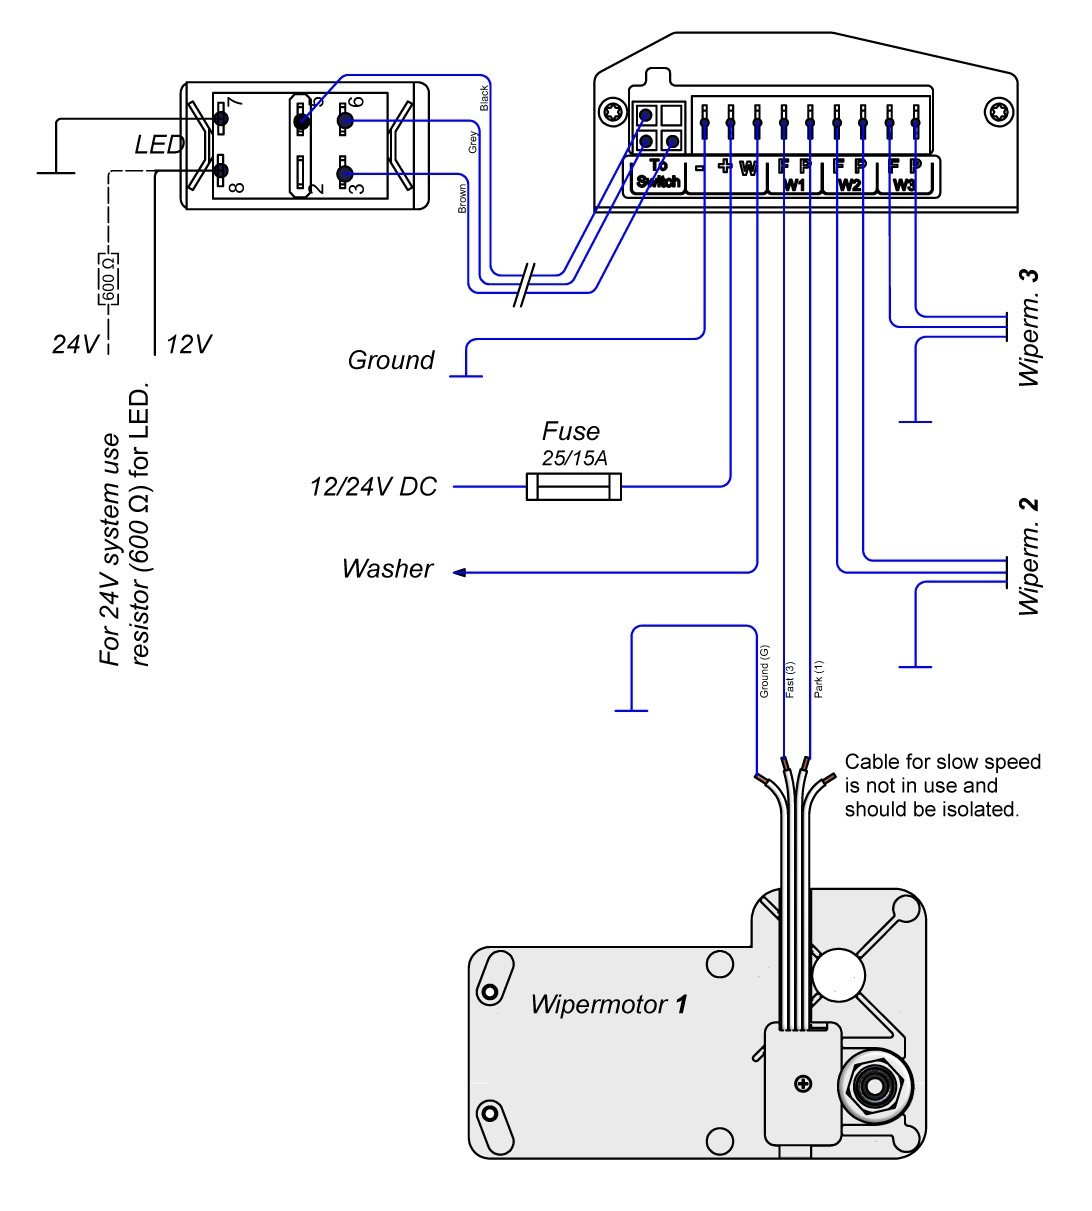 hight resolution of 1991 s10 wiper motor wiring diagram wiring diagram local wiring diagram for wiper motor for 1995 chevy s10 pickup